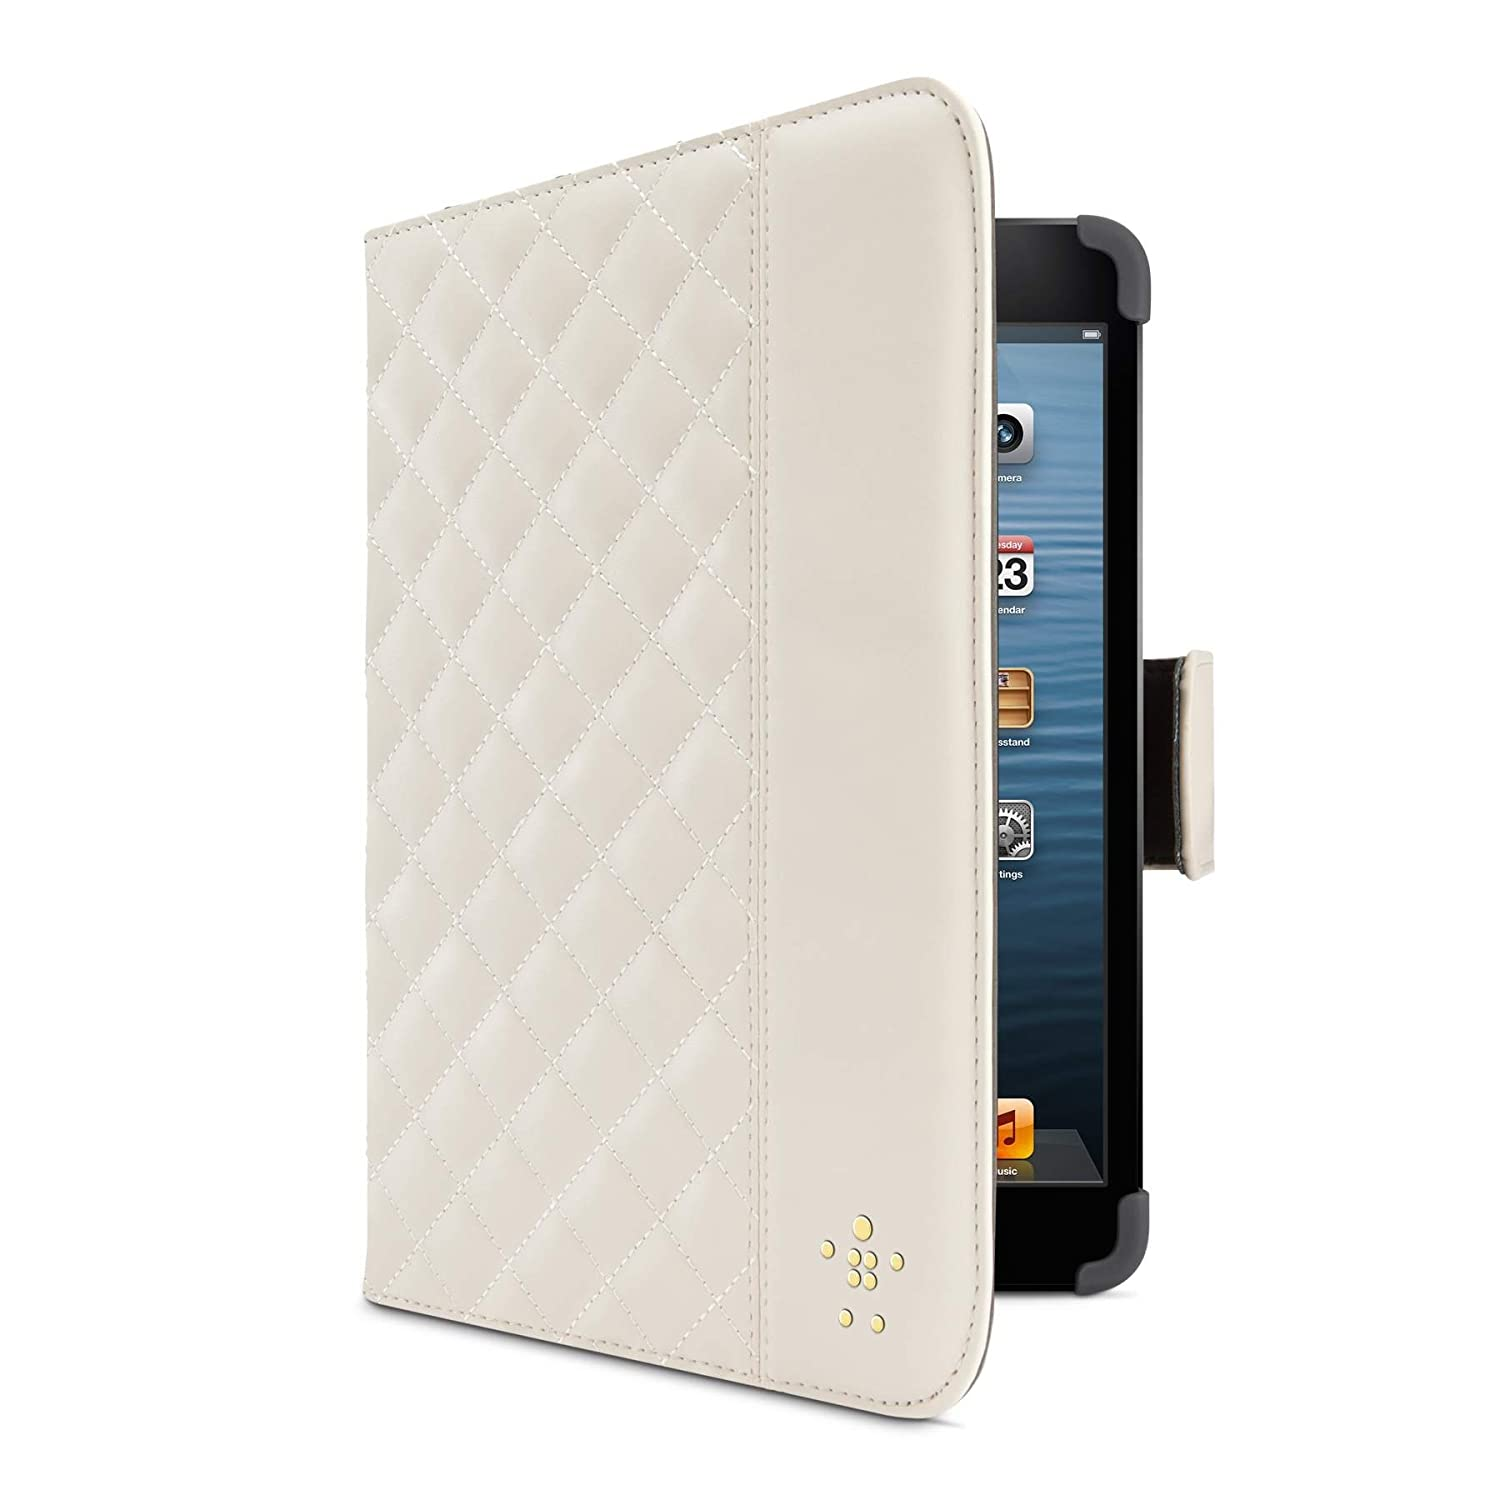 Amazon.com: Belkin Quilted Cover with Stand for iPad mini (Cream ... : quilted ipad case - Adamdwight.com